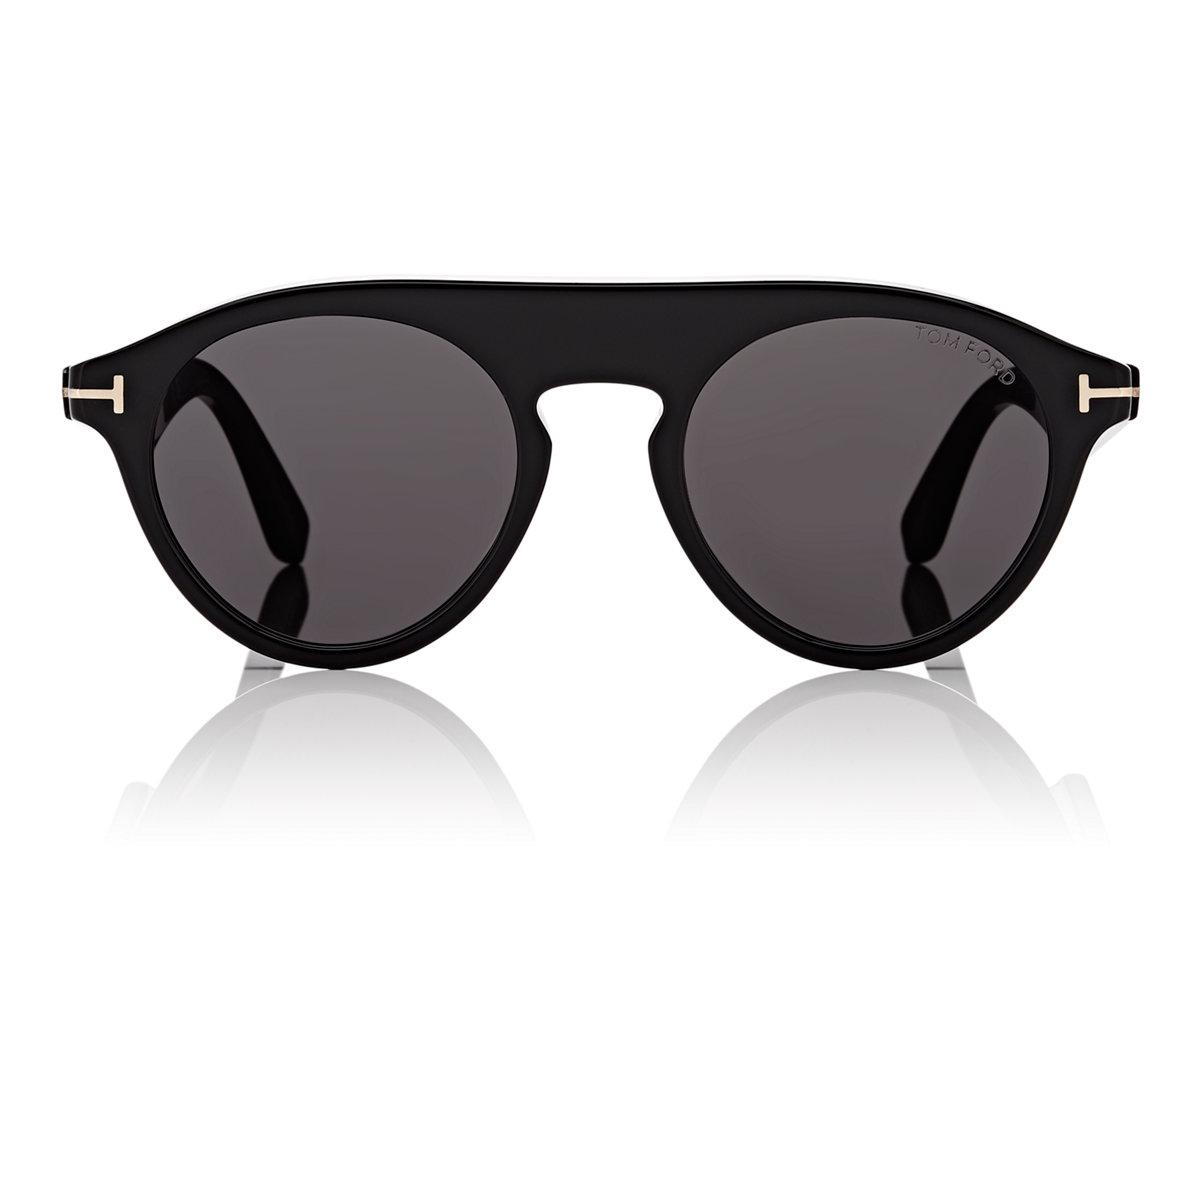 b47a2be58428 Lyst - Tom Ford Christopher Sunglasses in Black